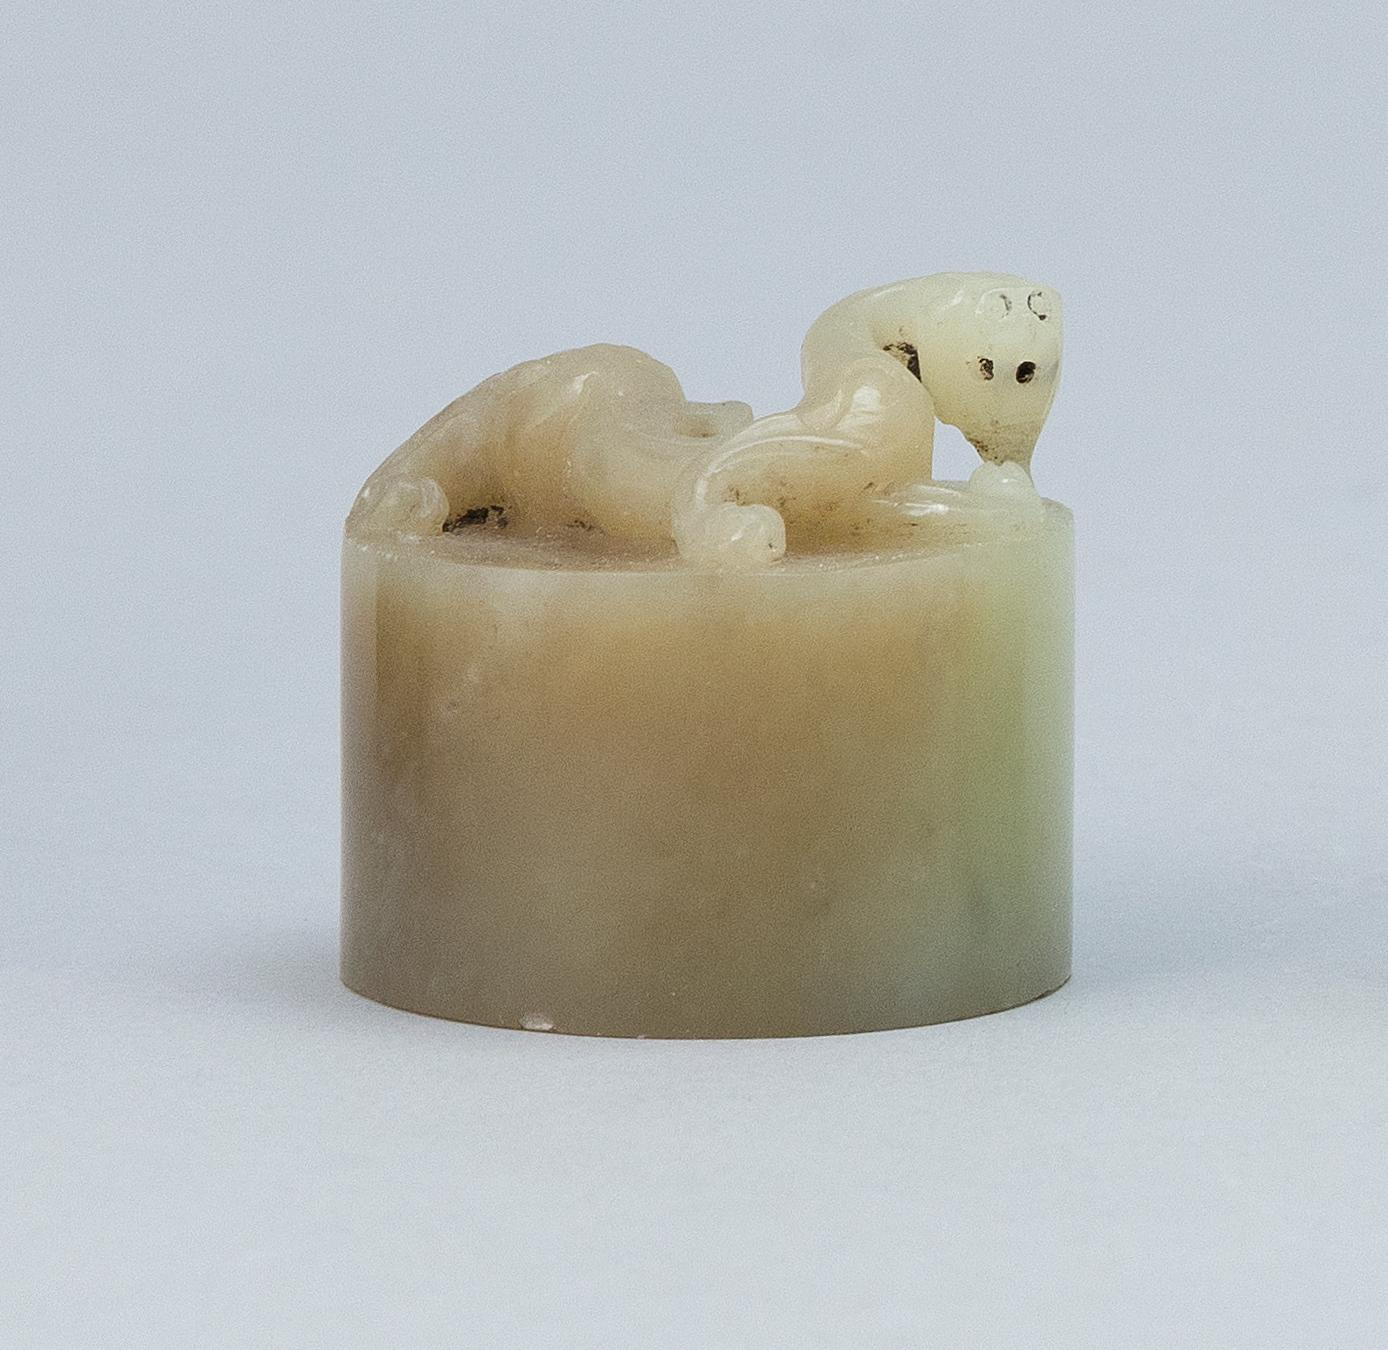 "CHINESE CELADON JADE SEAL Cylindrical, with dragon-form finial. Base cut with four characters. Height 1.4""."